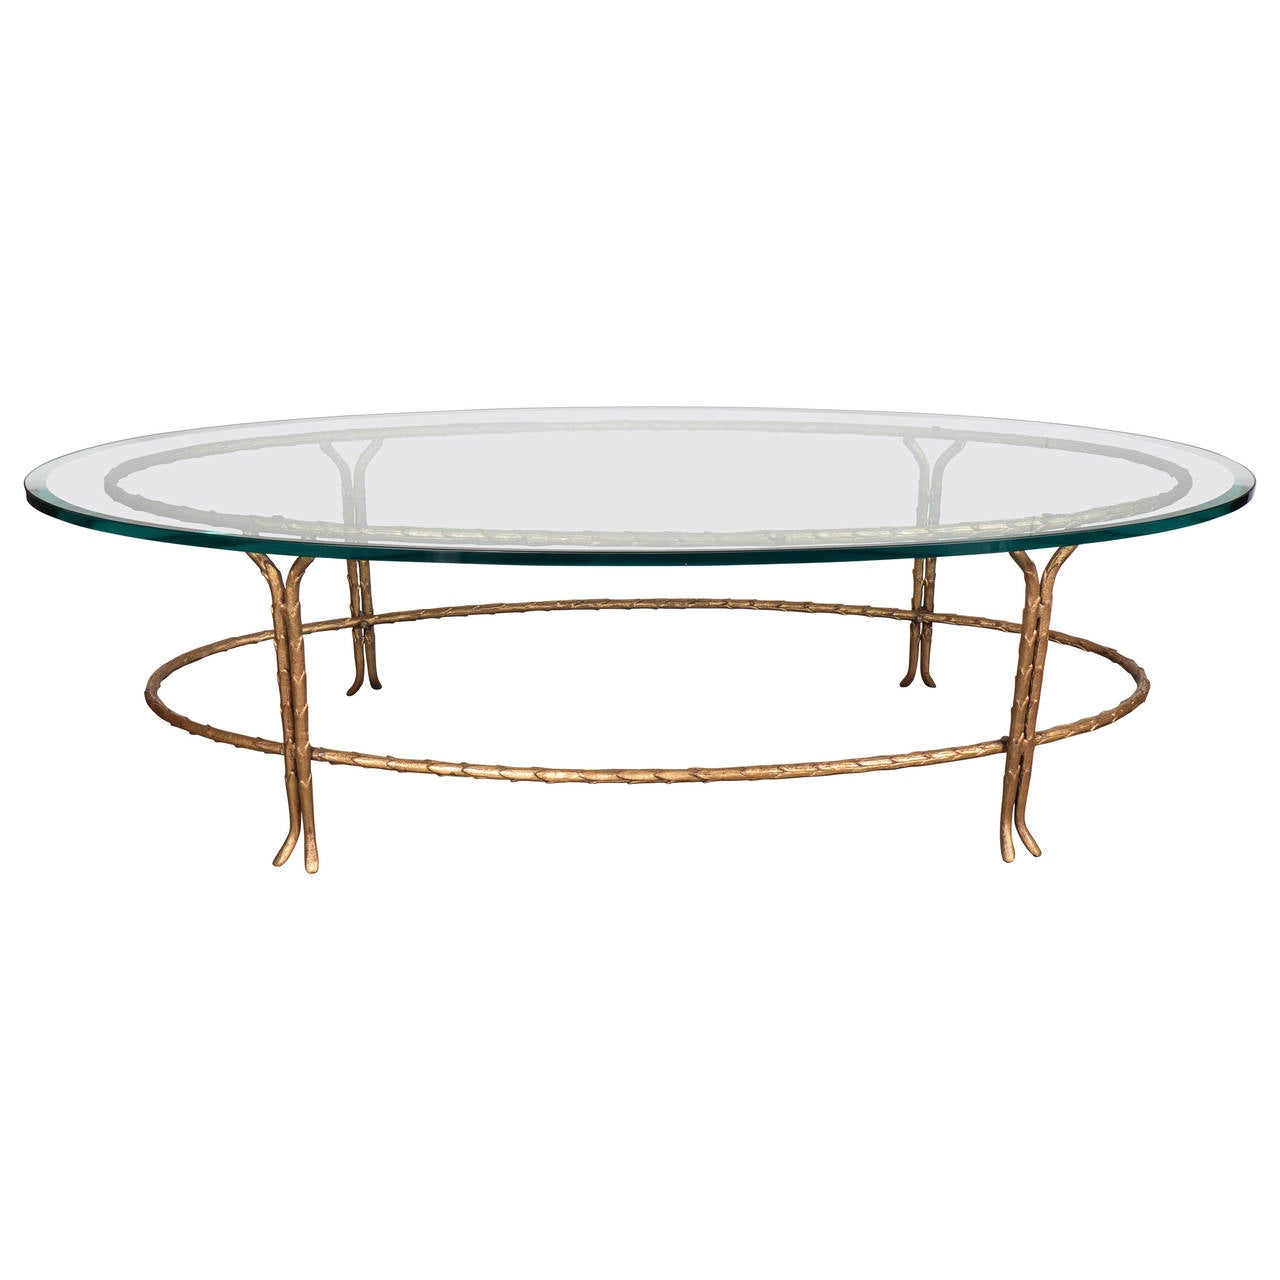 Elegant bagues gilt bronze oval cocktail table with beveled glass top at 1stdibs Glass oval coffee tables